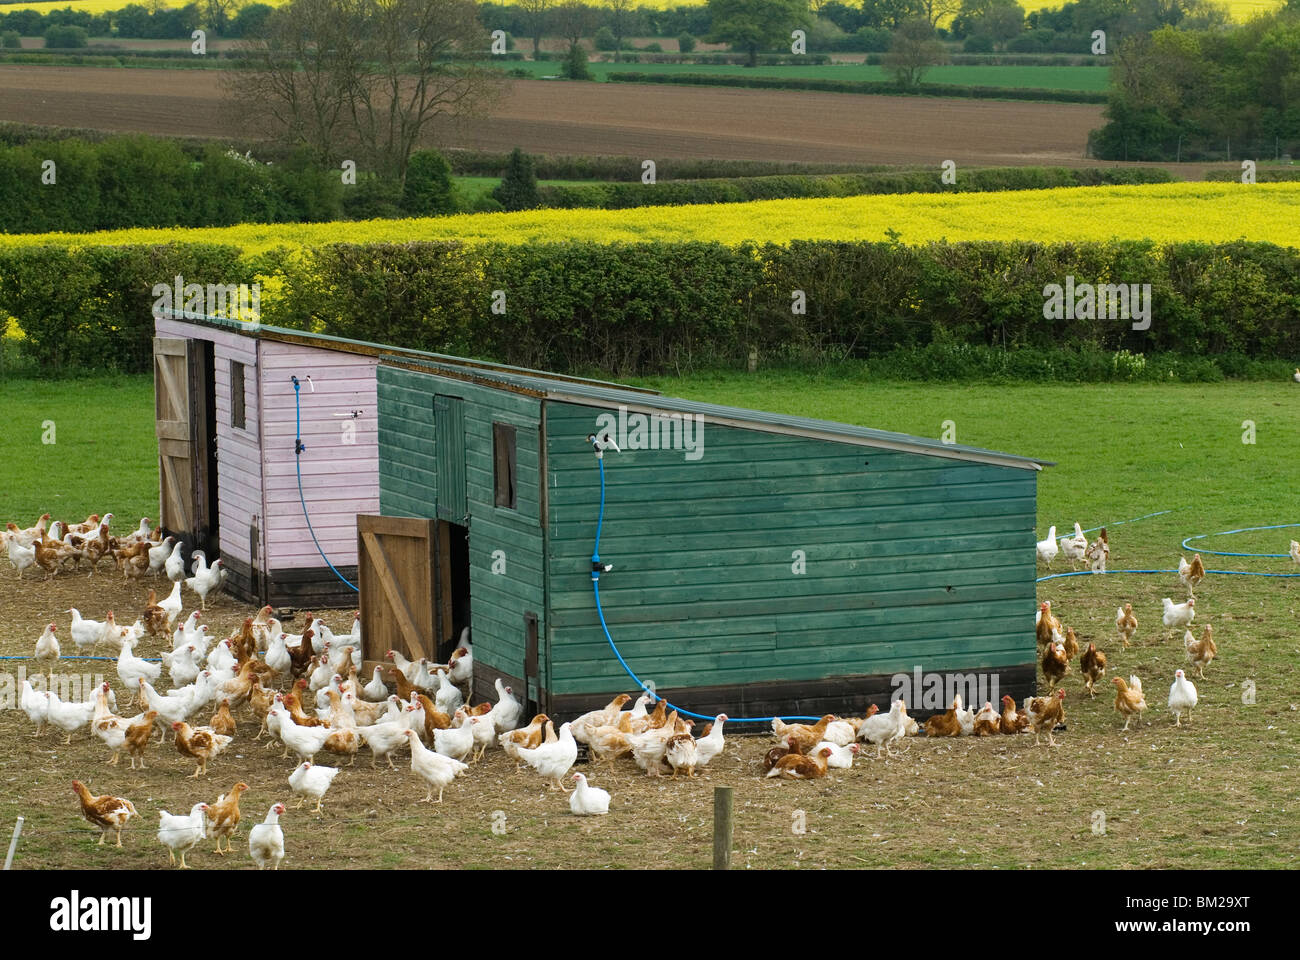 Poultry farm Leicestershire Free range chickens. HOMER SYKES - Stock Image